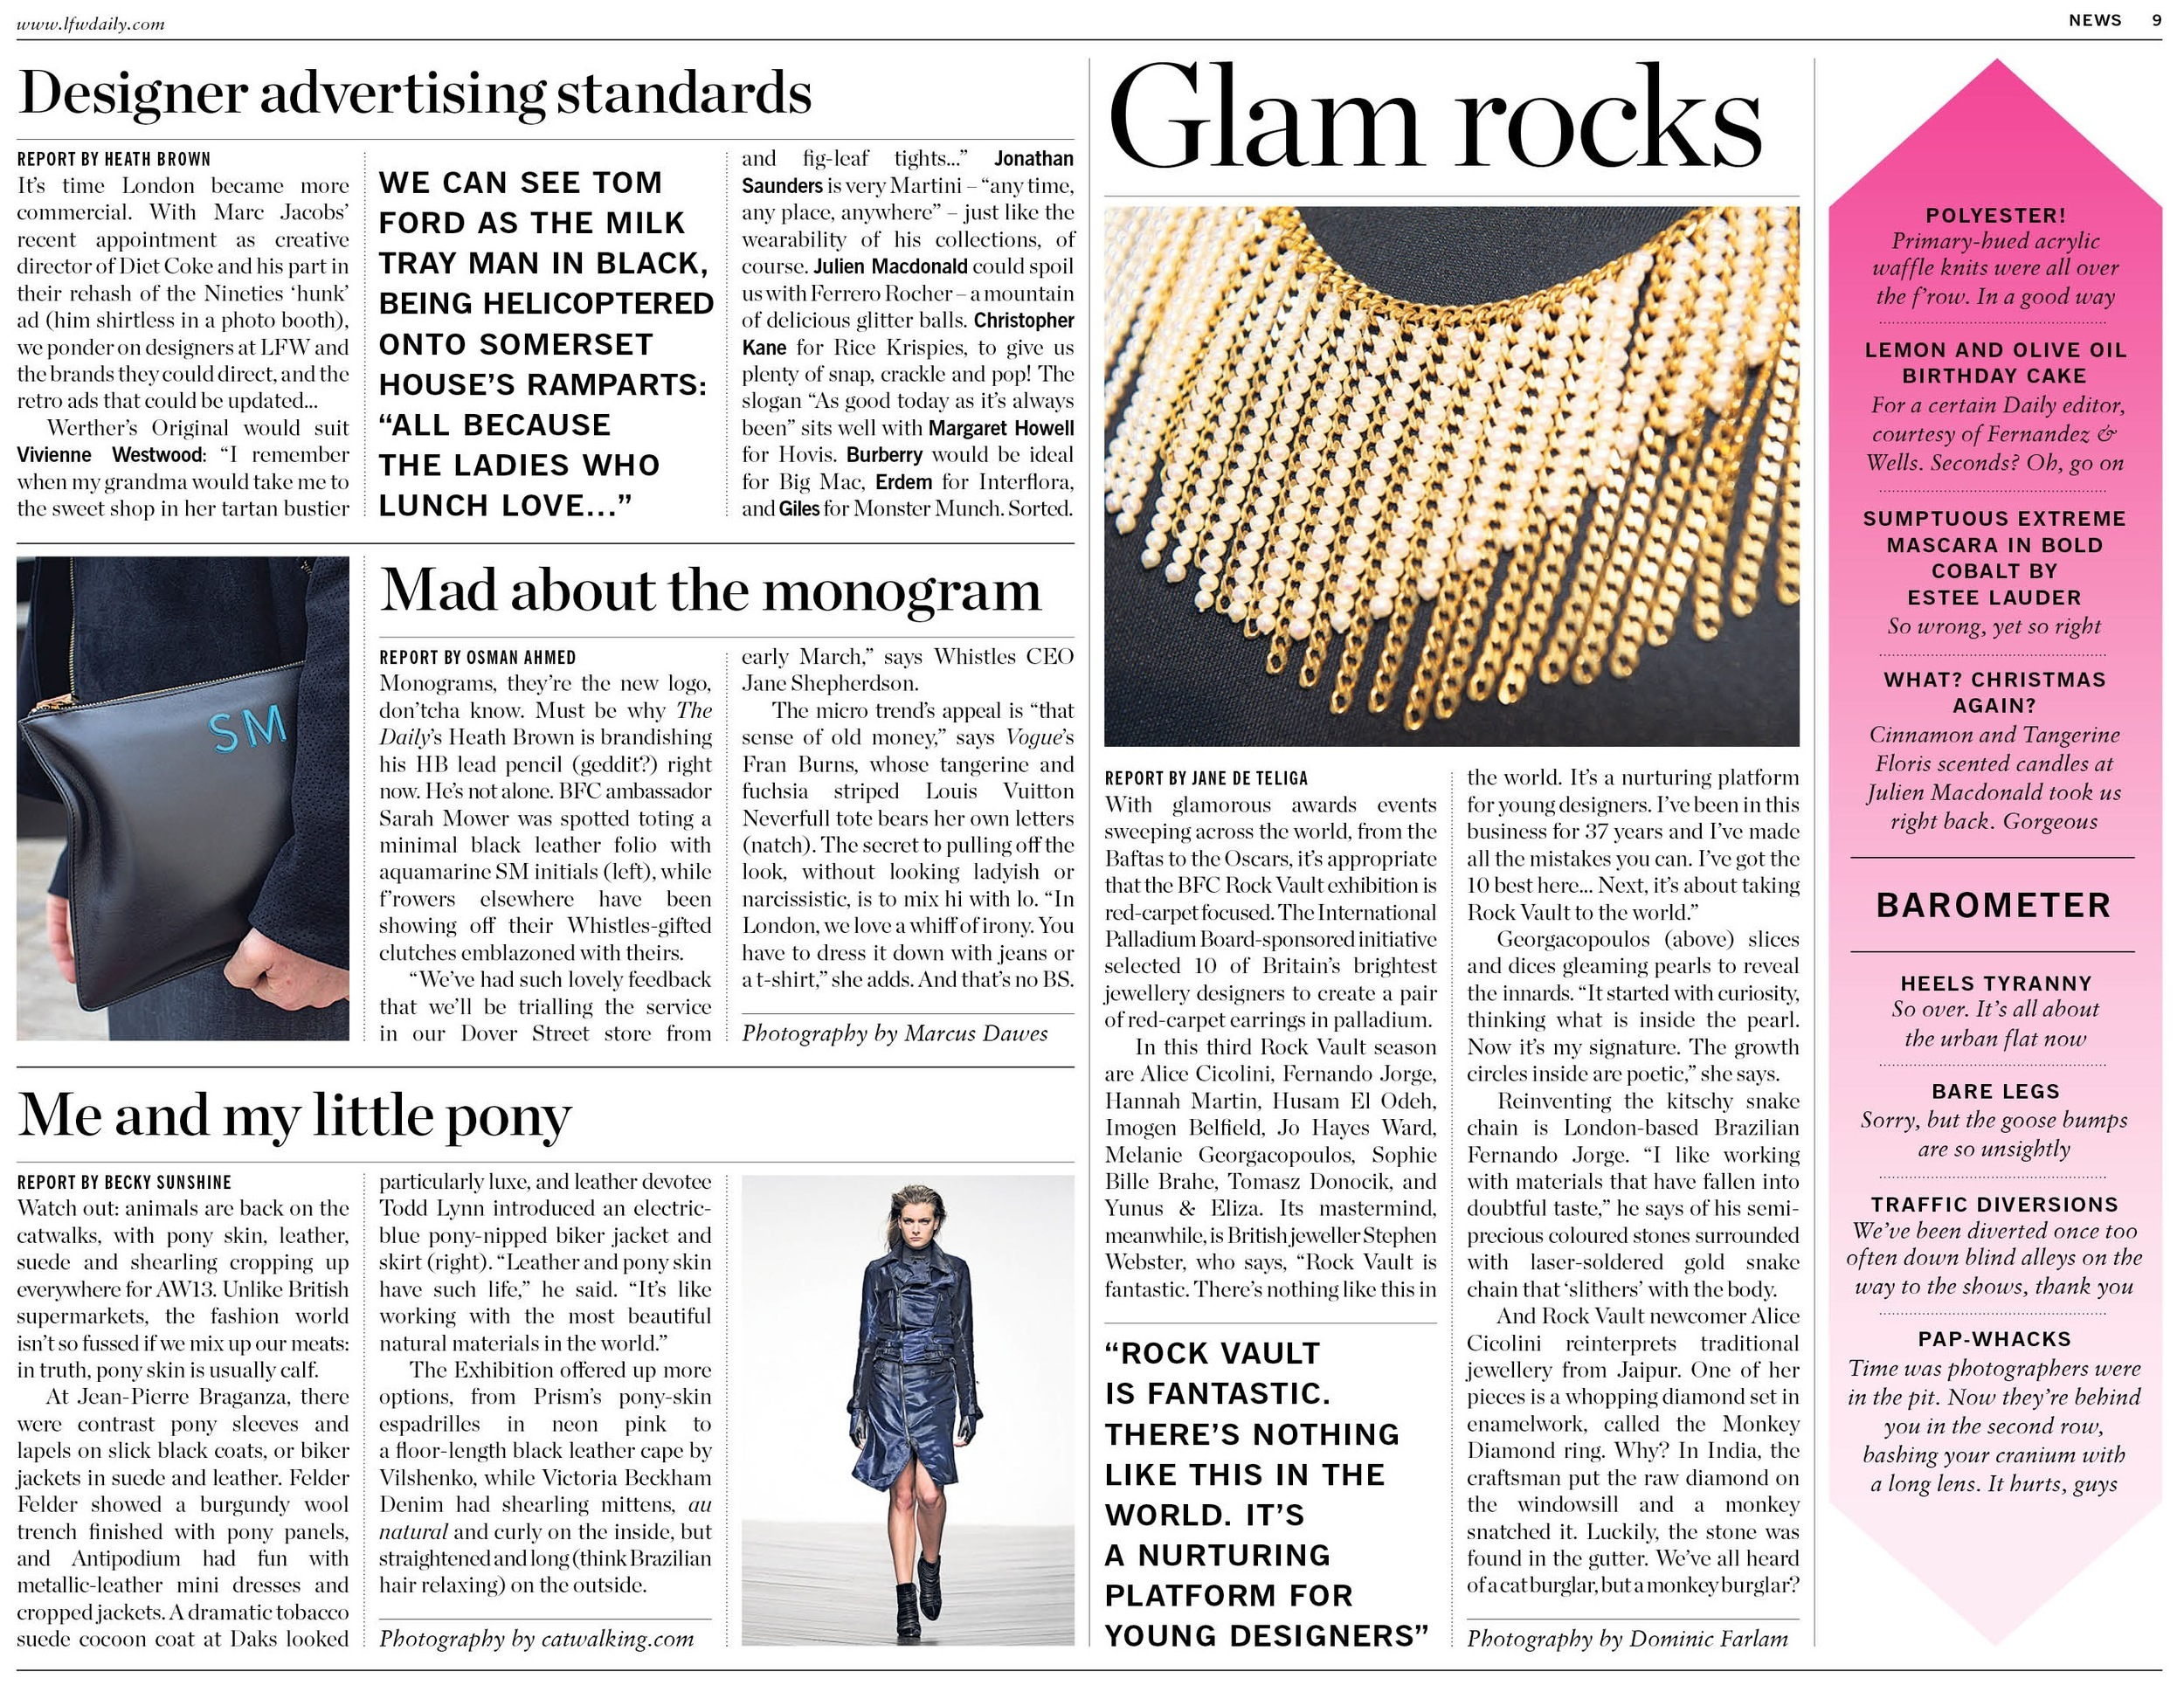 Mad About the Monogram, LFW The Daily